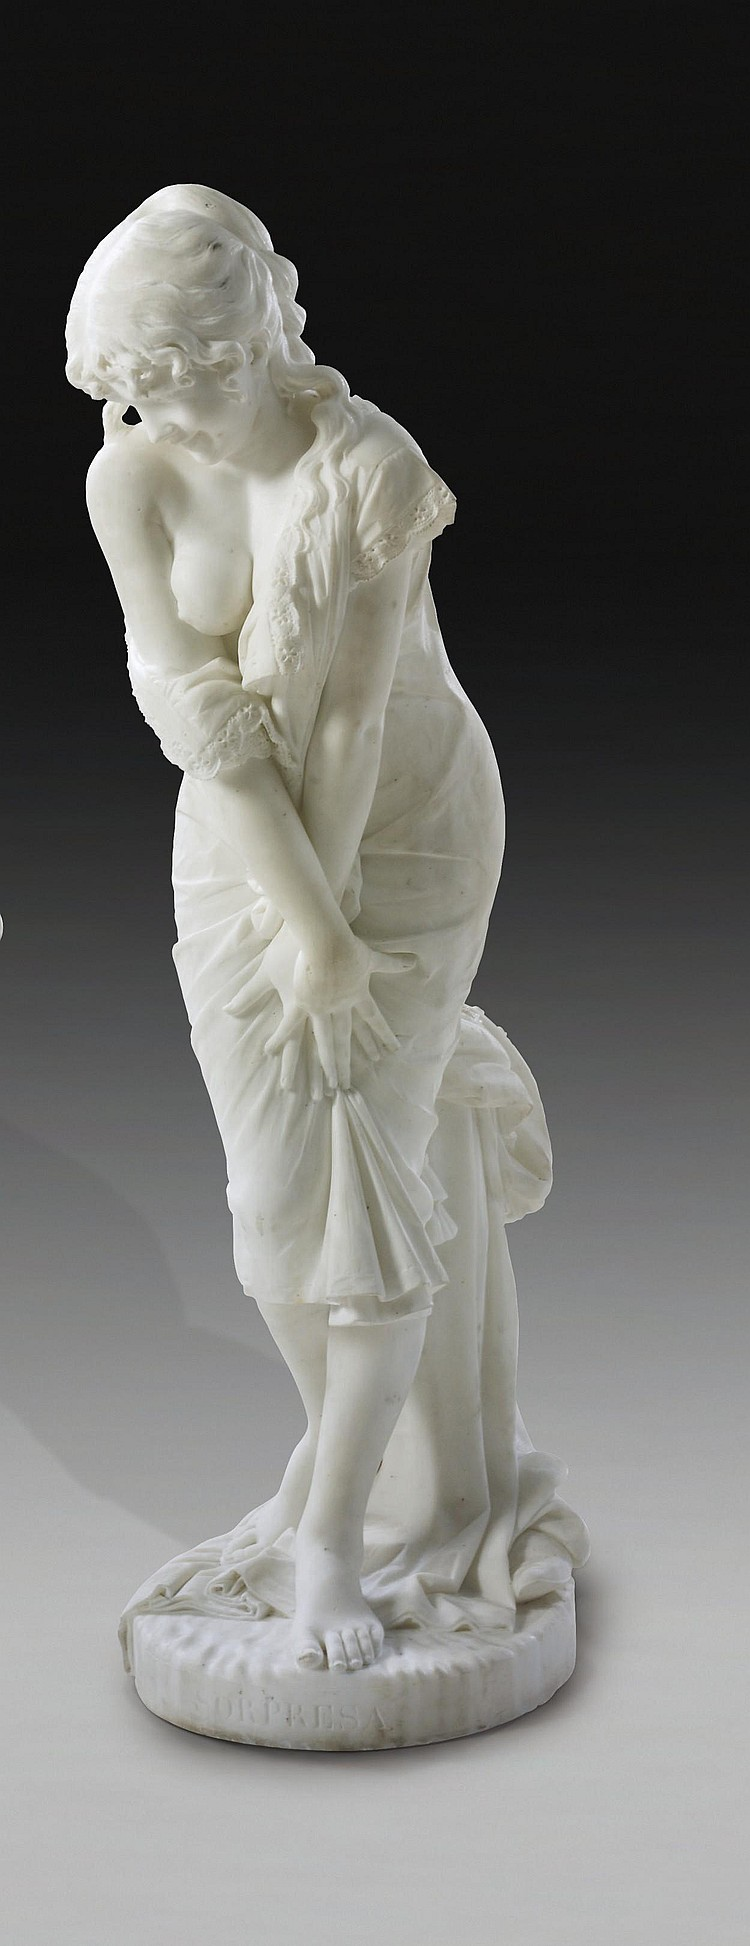 AN ITALIAN MARBLE FIGURE ENTITLED 'LA SORPRESA' (THE SURPRISE)